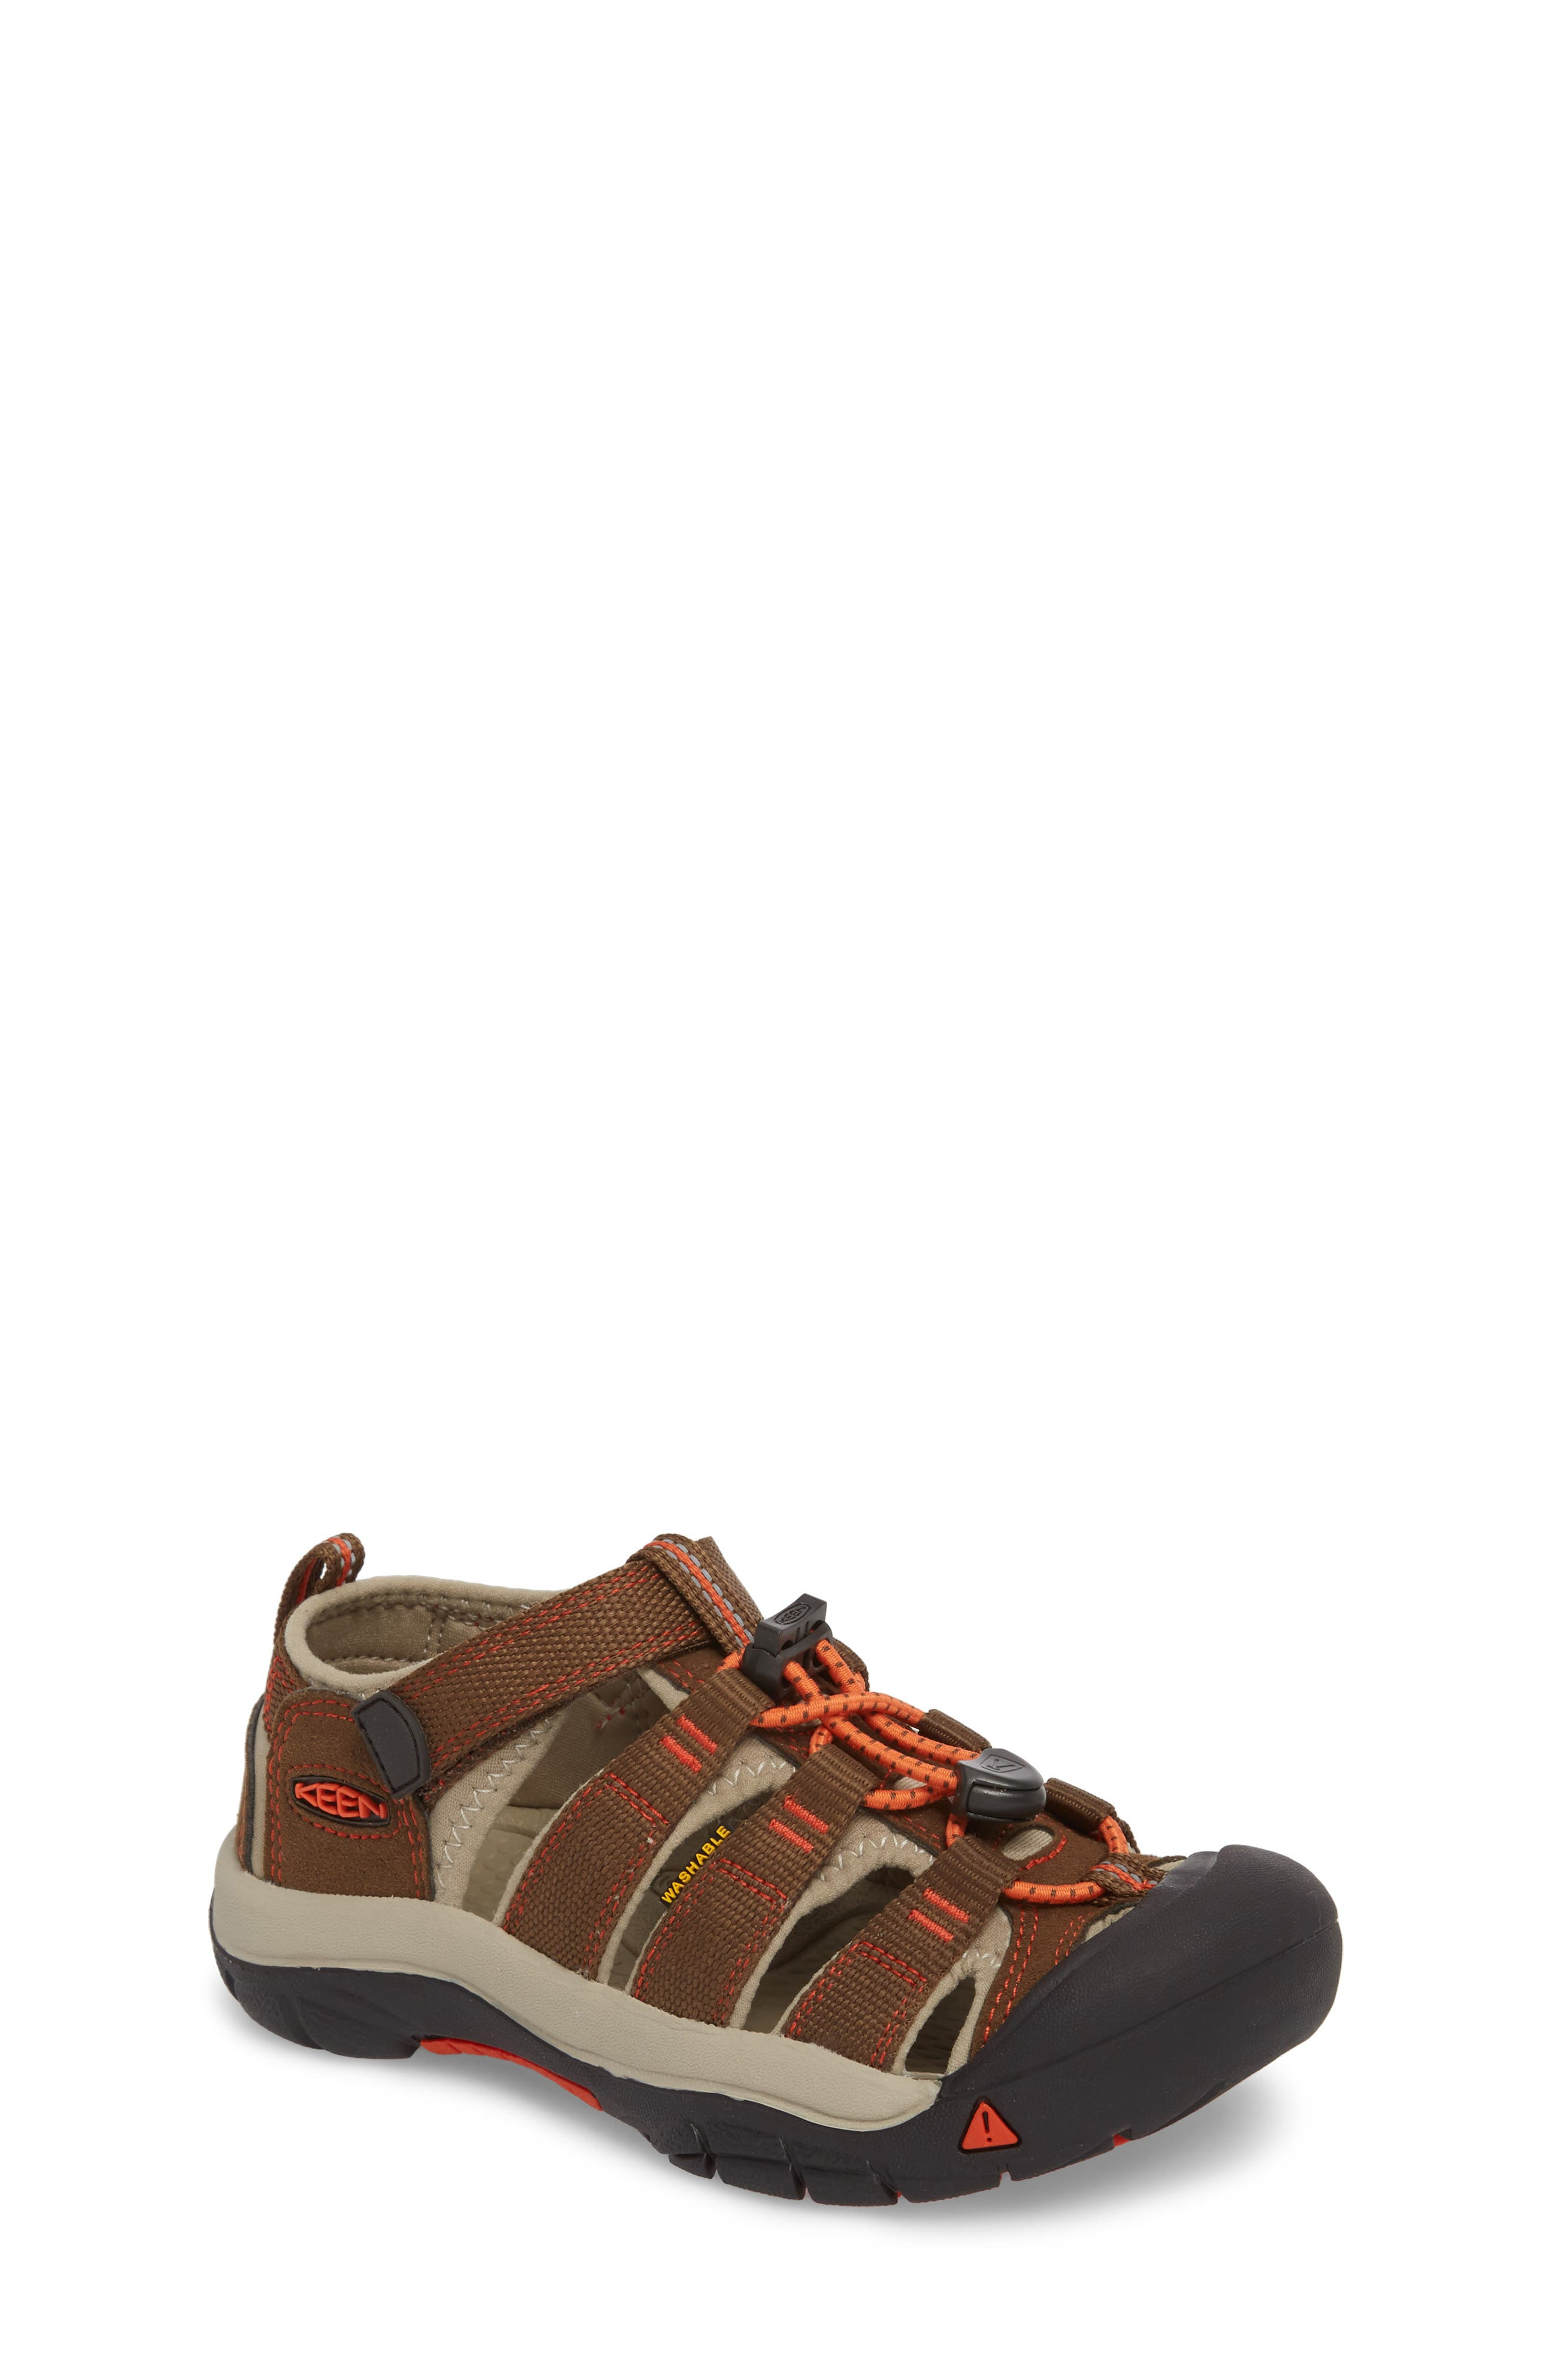 'Newport H2' Water Friendly Sandal,                             Main thumbnail 1, color,                             DARK EARTH/ SPICY ORANGE